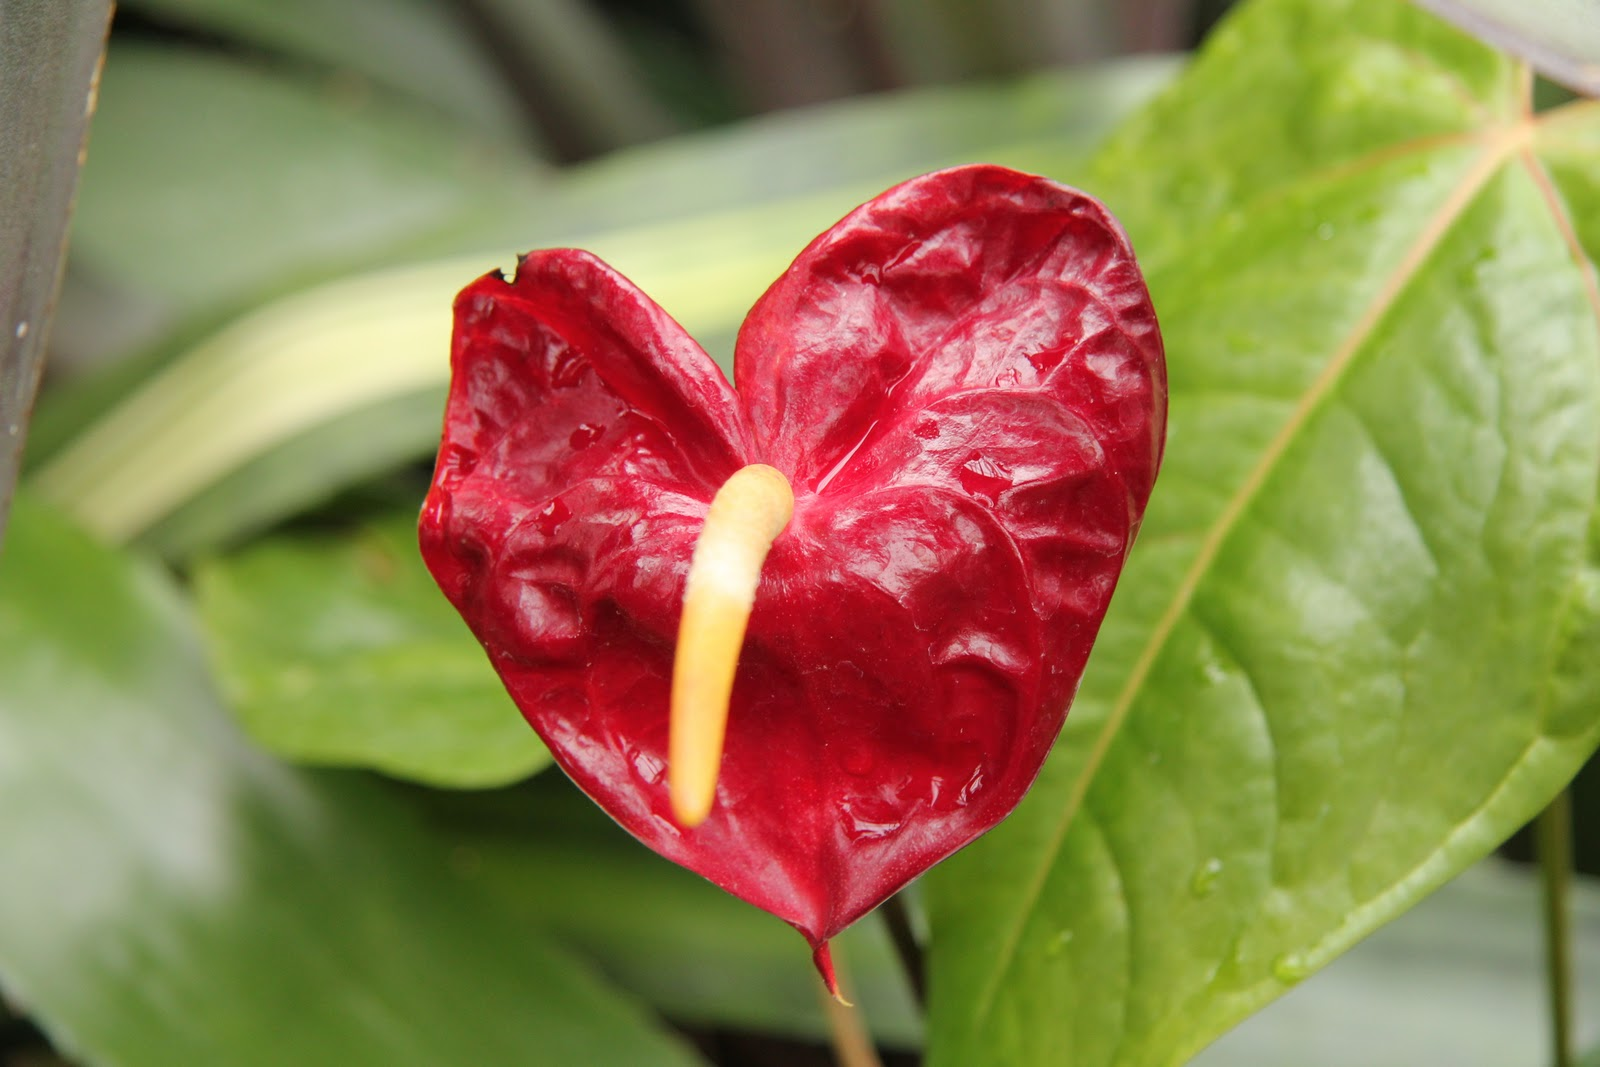 Gardening and gardens a unique valentine flower this beautiful heart shaped flower with the spadix projecting sharply from the center is one of the most popular tropical flowers used by florists dhlflorist Images